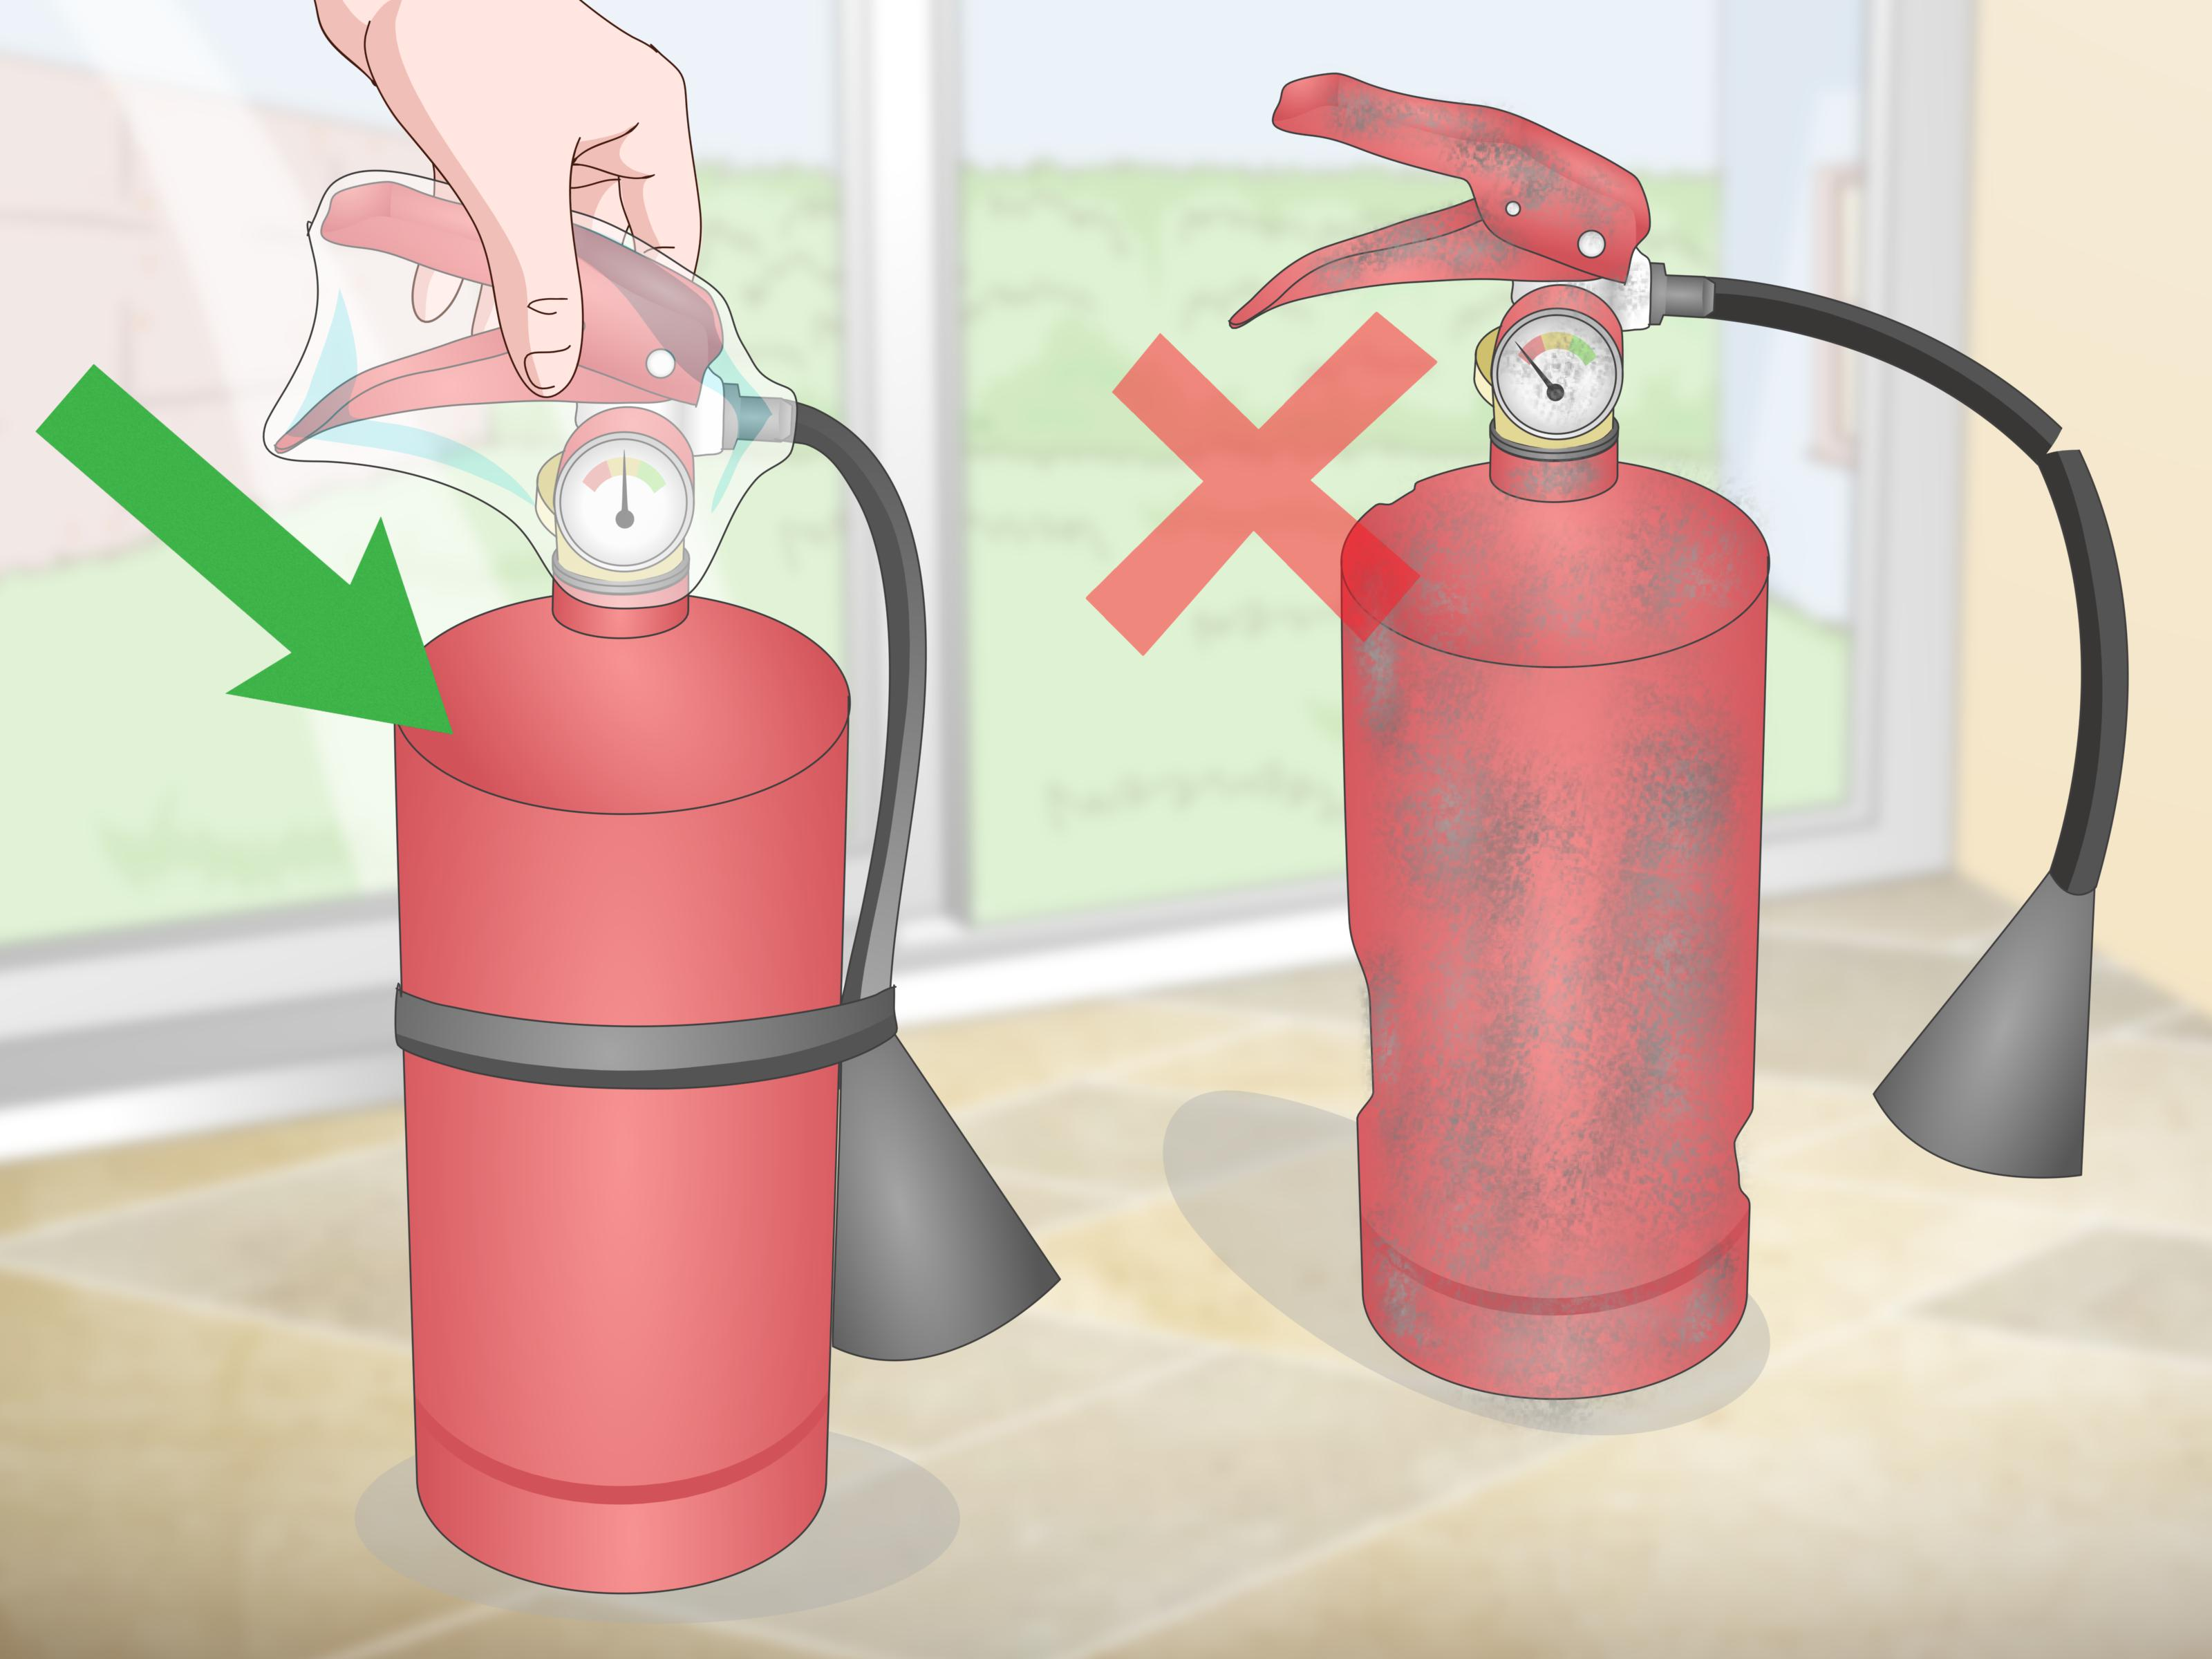 How to Refill a Fire Extinguisher: 11 Steps (with Pictures)